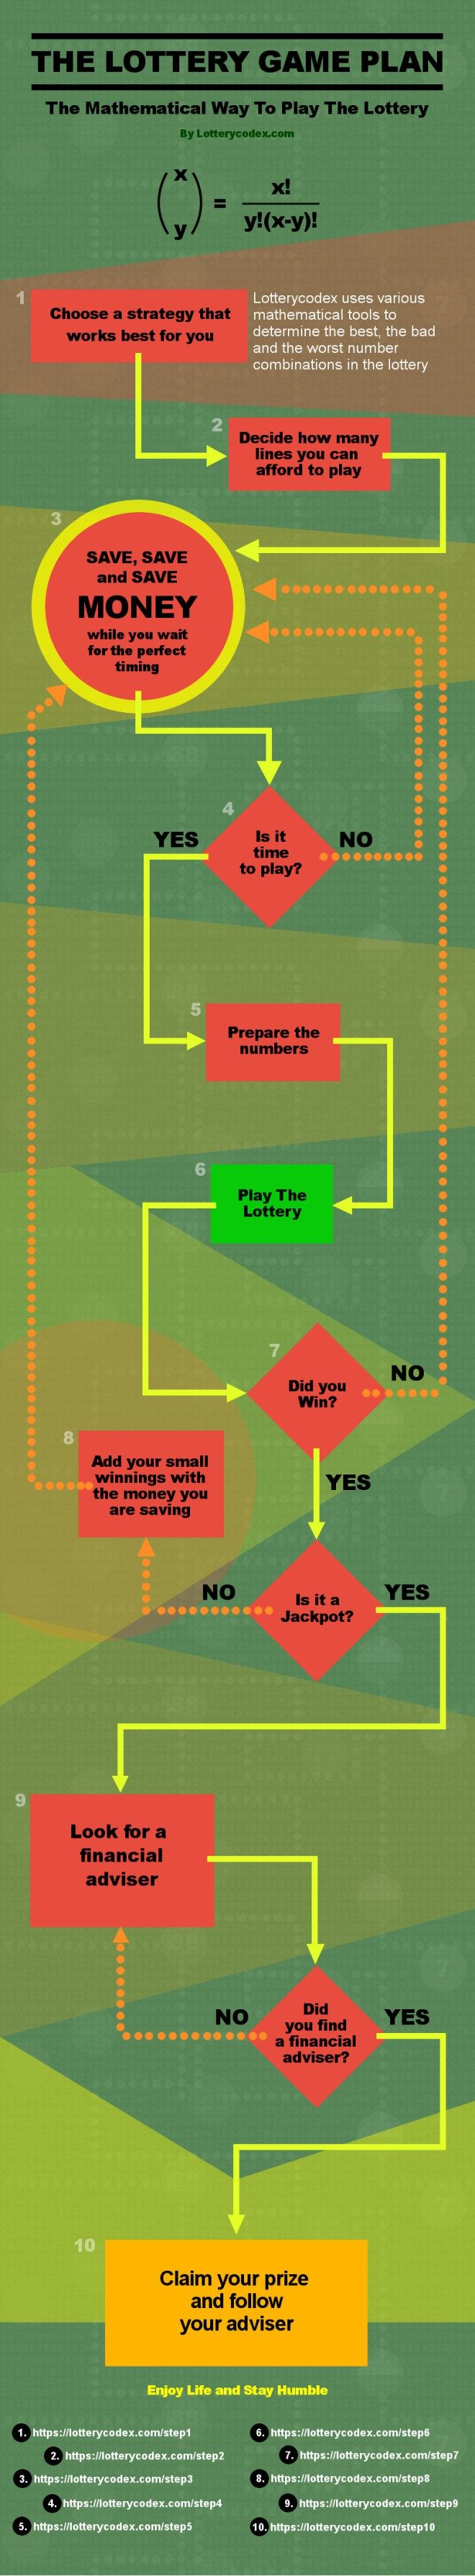 The Lotterycodex Lottery Game Plan